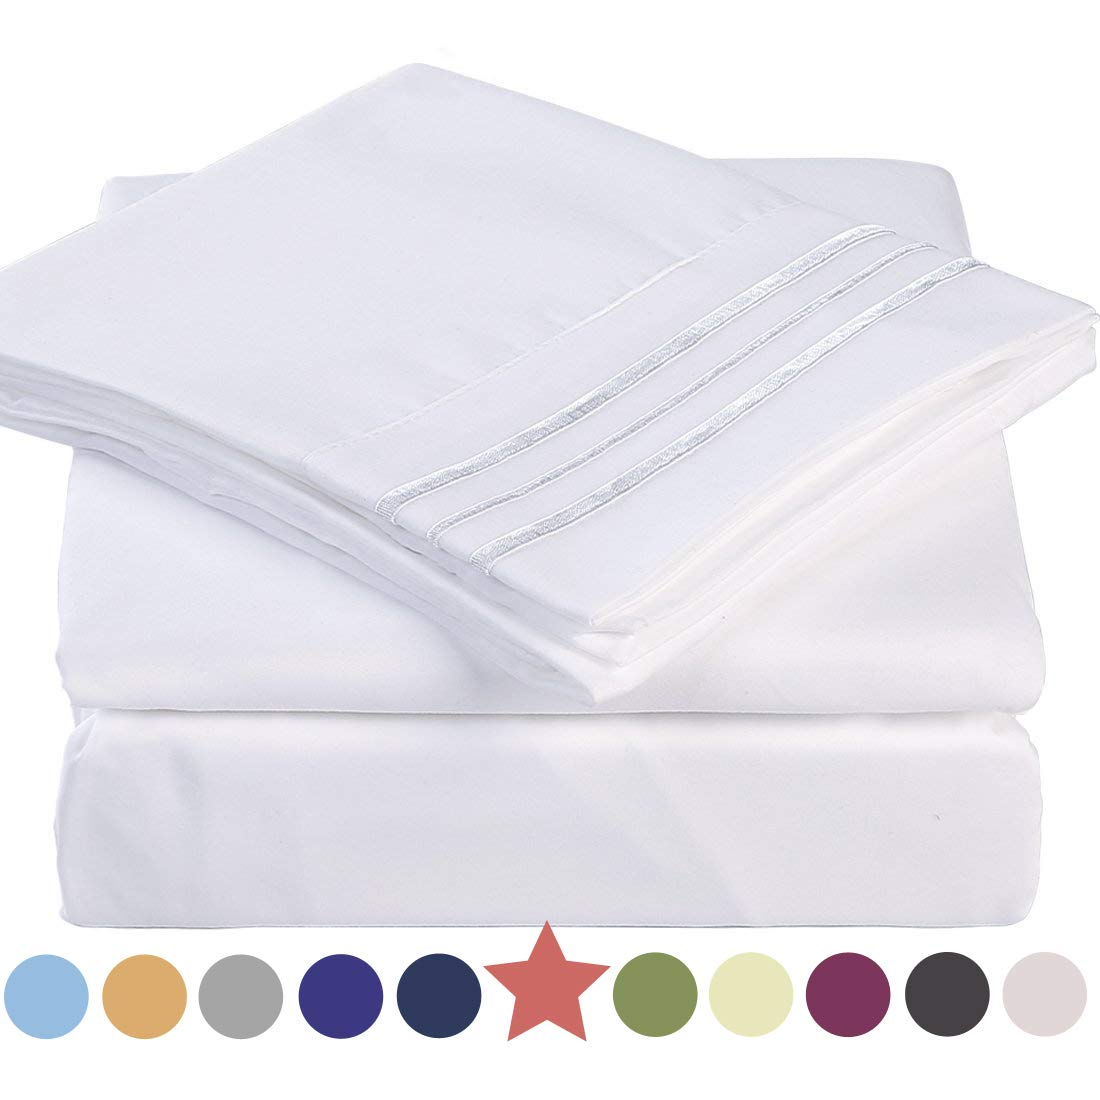 Premium 4 Piece Bed Sheet Set 1800 Thread Count Bedding 100% Microfiber Polyester - Silky Soft, Warm, Breathable, Cooling, Wrinkle and Fade Resistant - 10-16'' Extra Deep Pockets - Queen, White